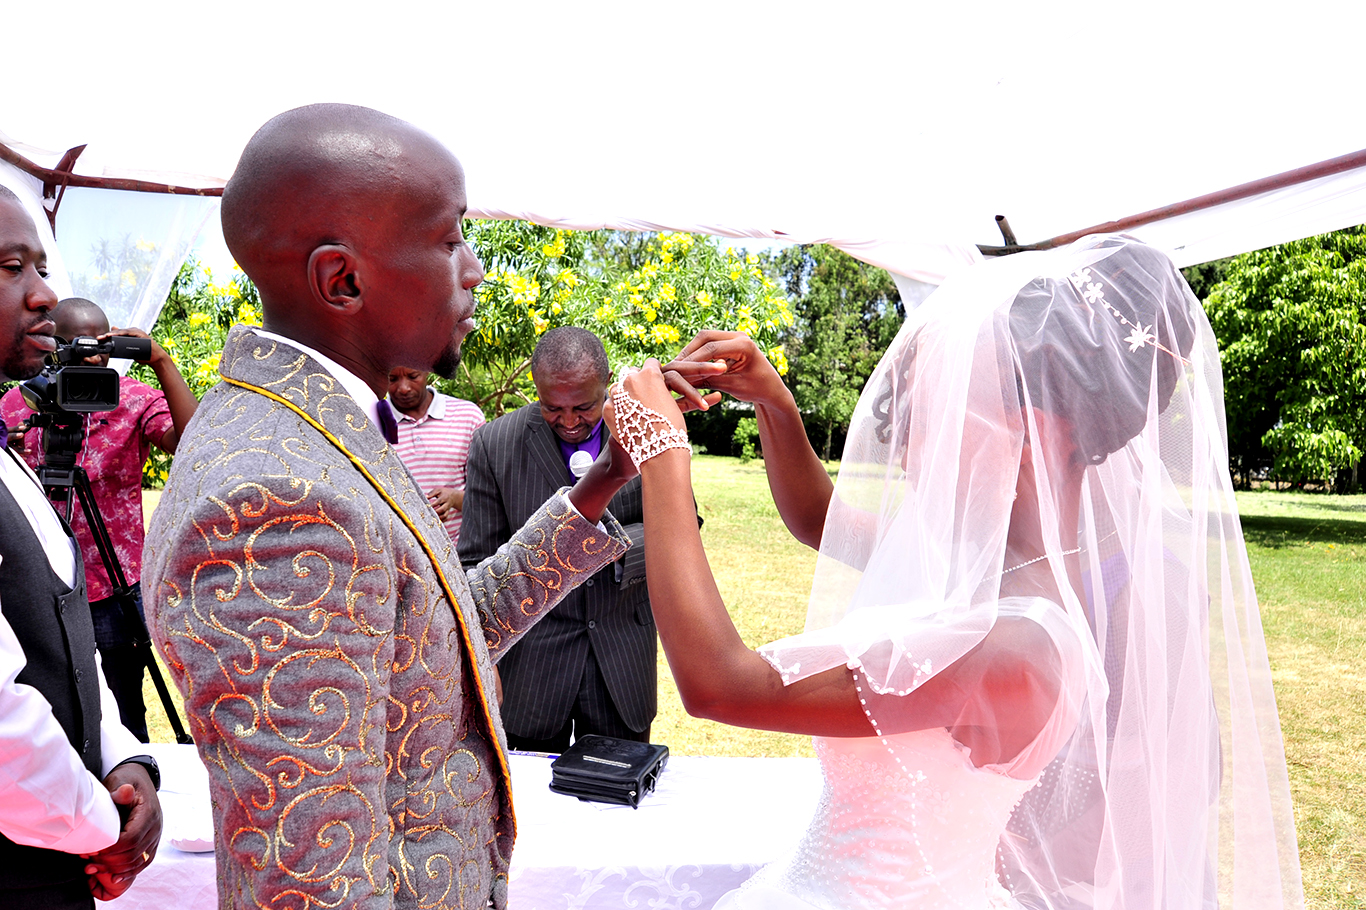 Unique wedding jackets for the groom in Kenya